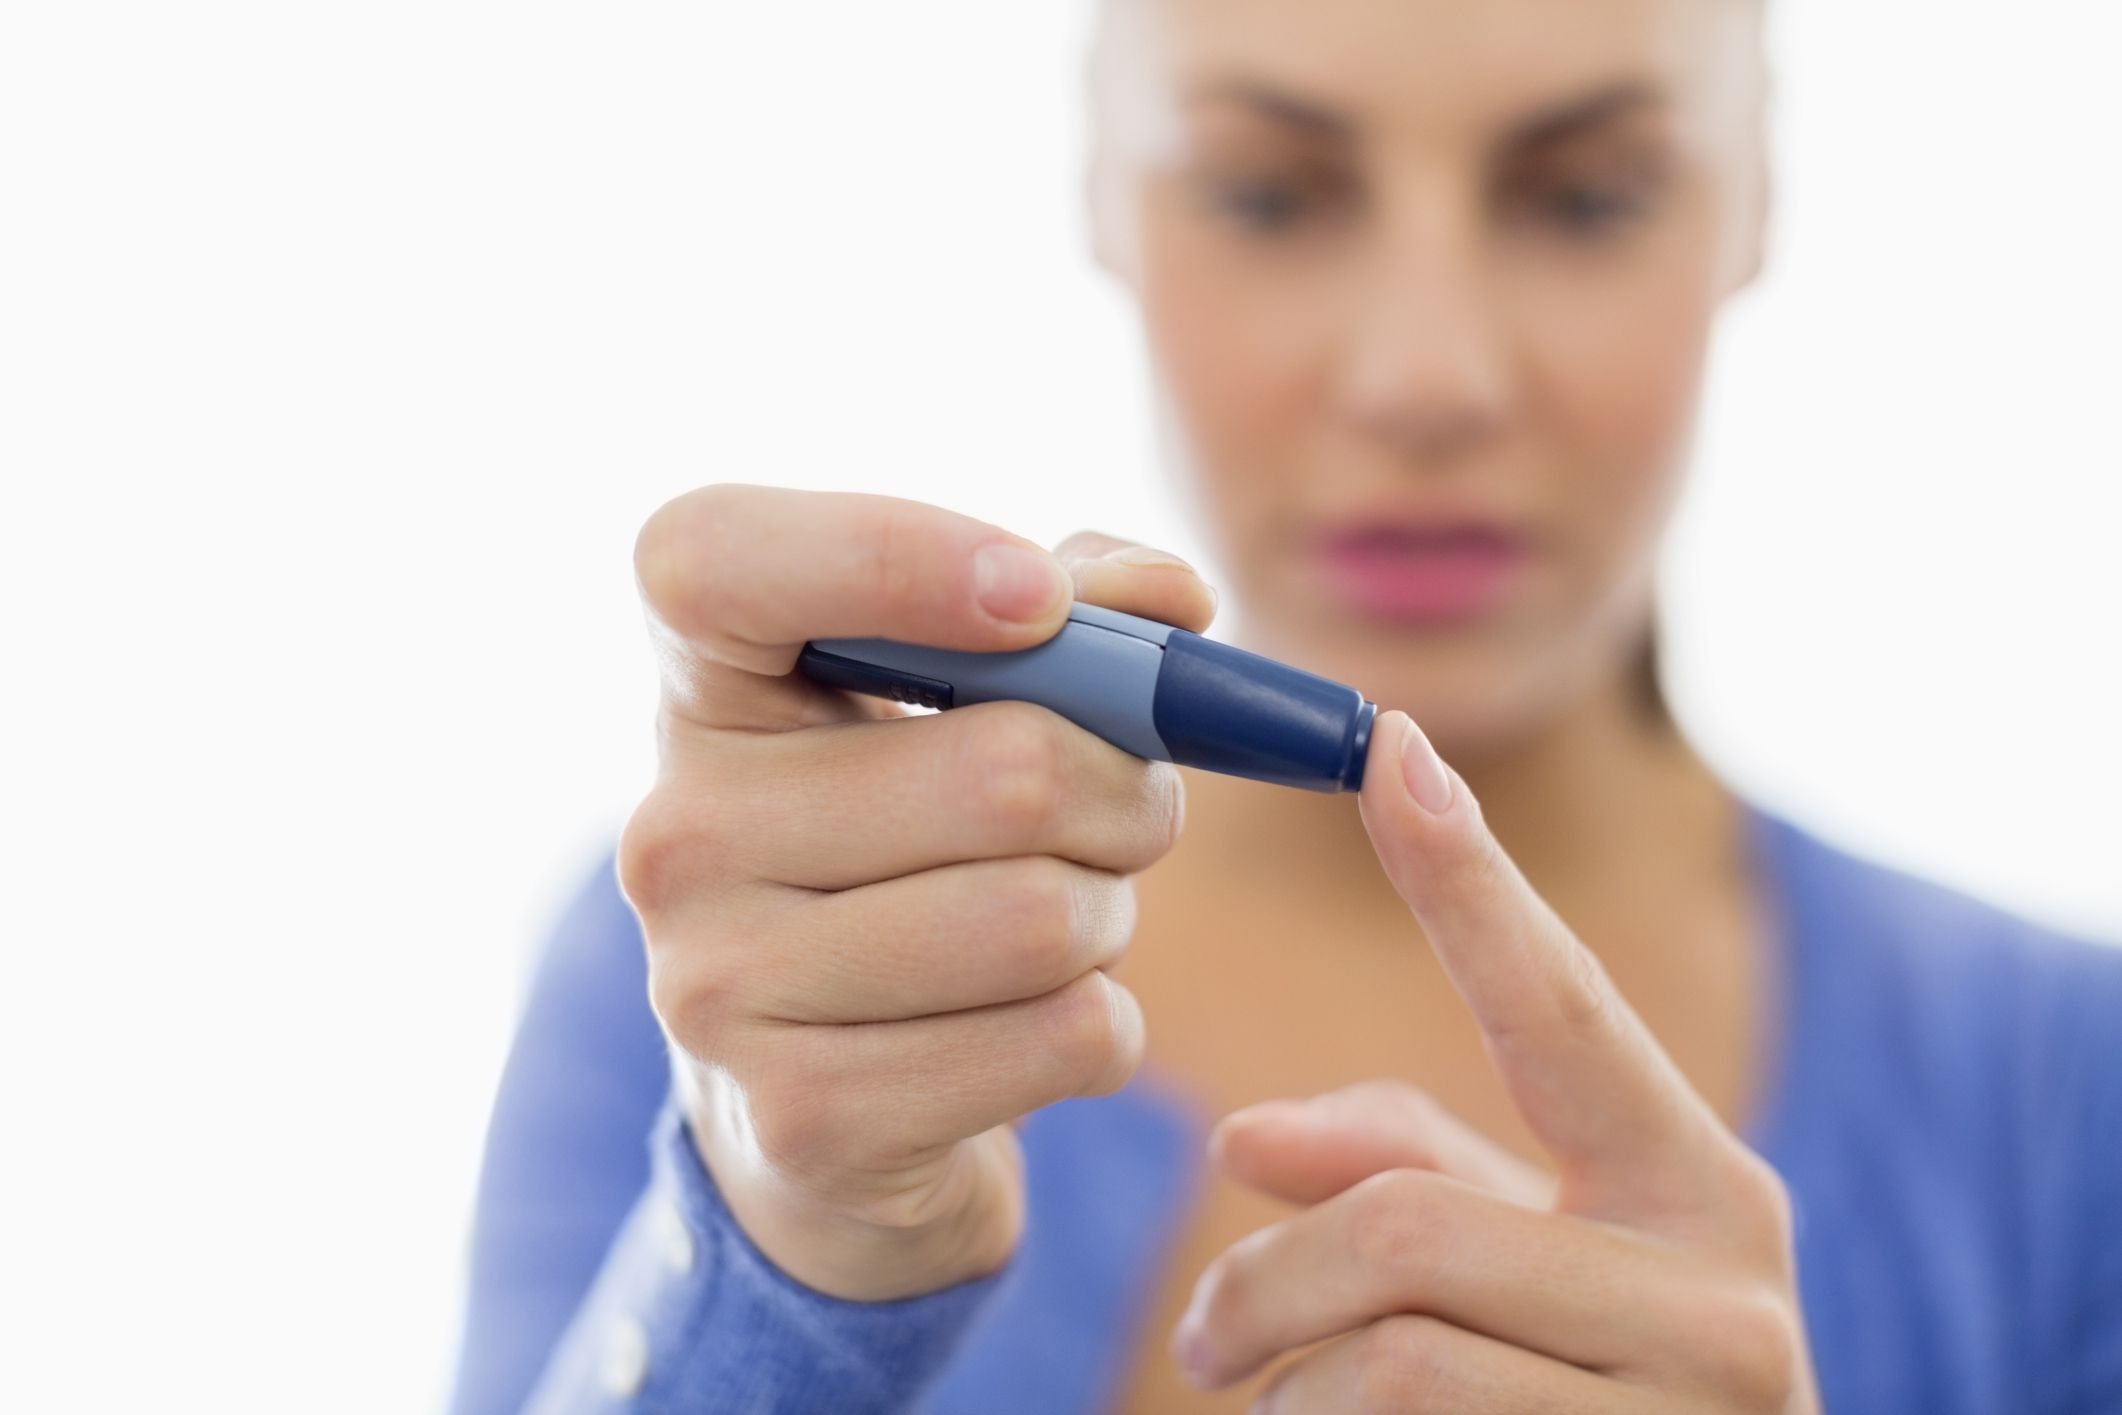 Woman with diabetes testing device